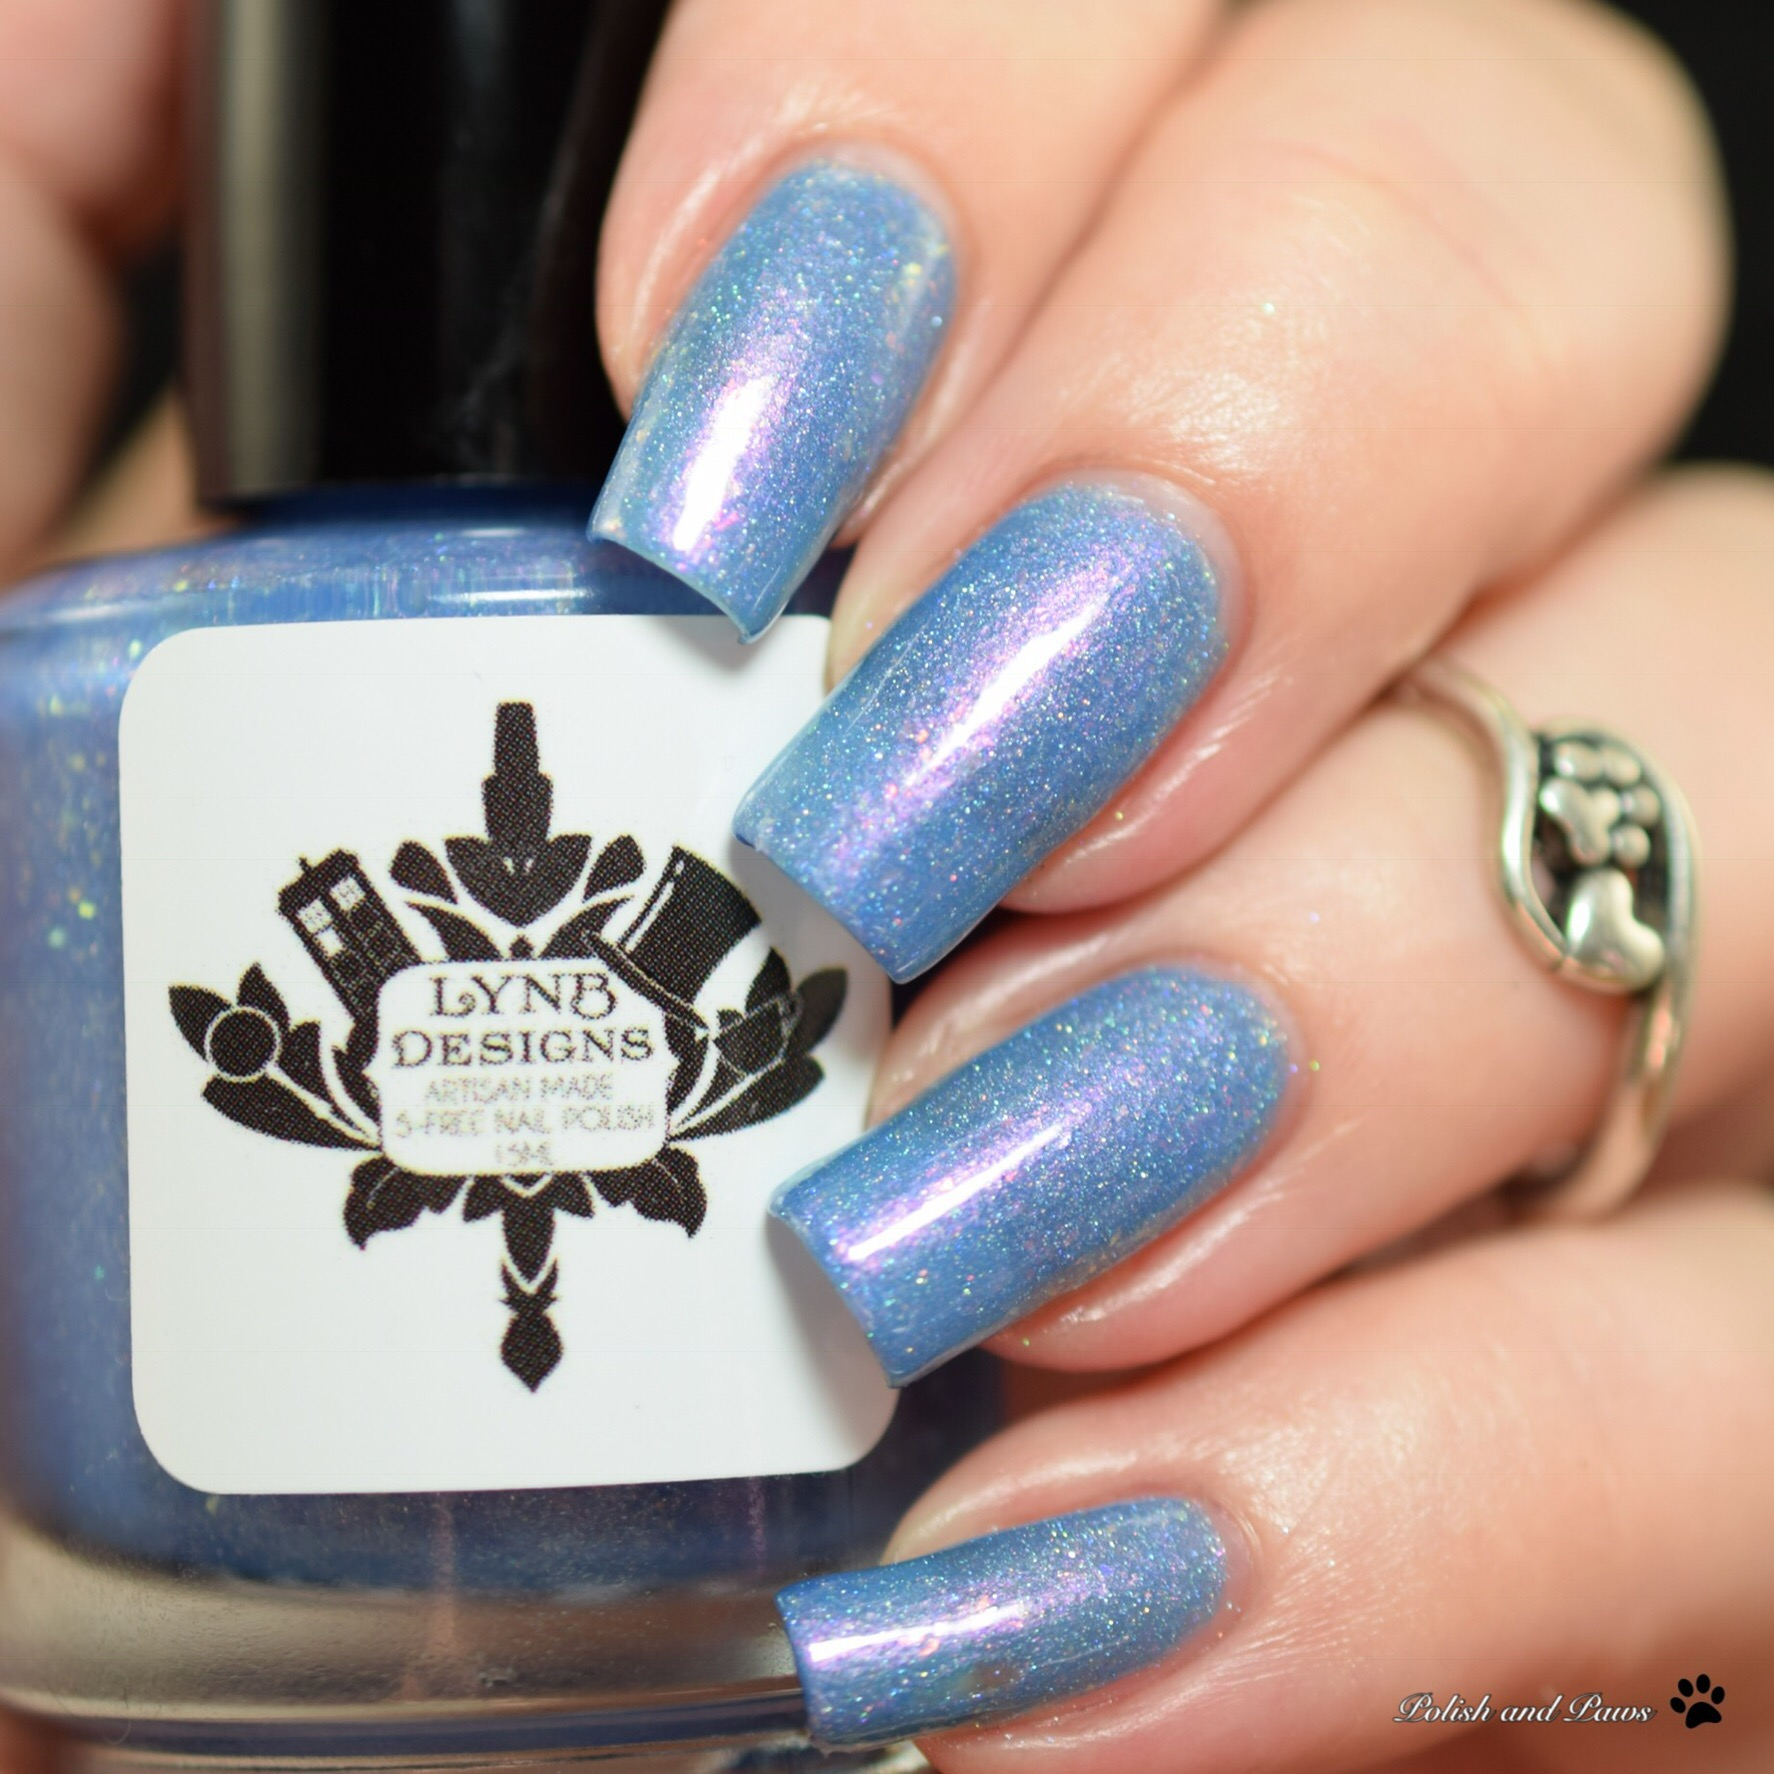 May Polish Pickup ~ LynB Designs Spoon!